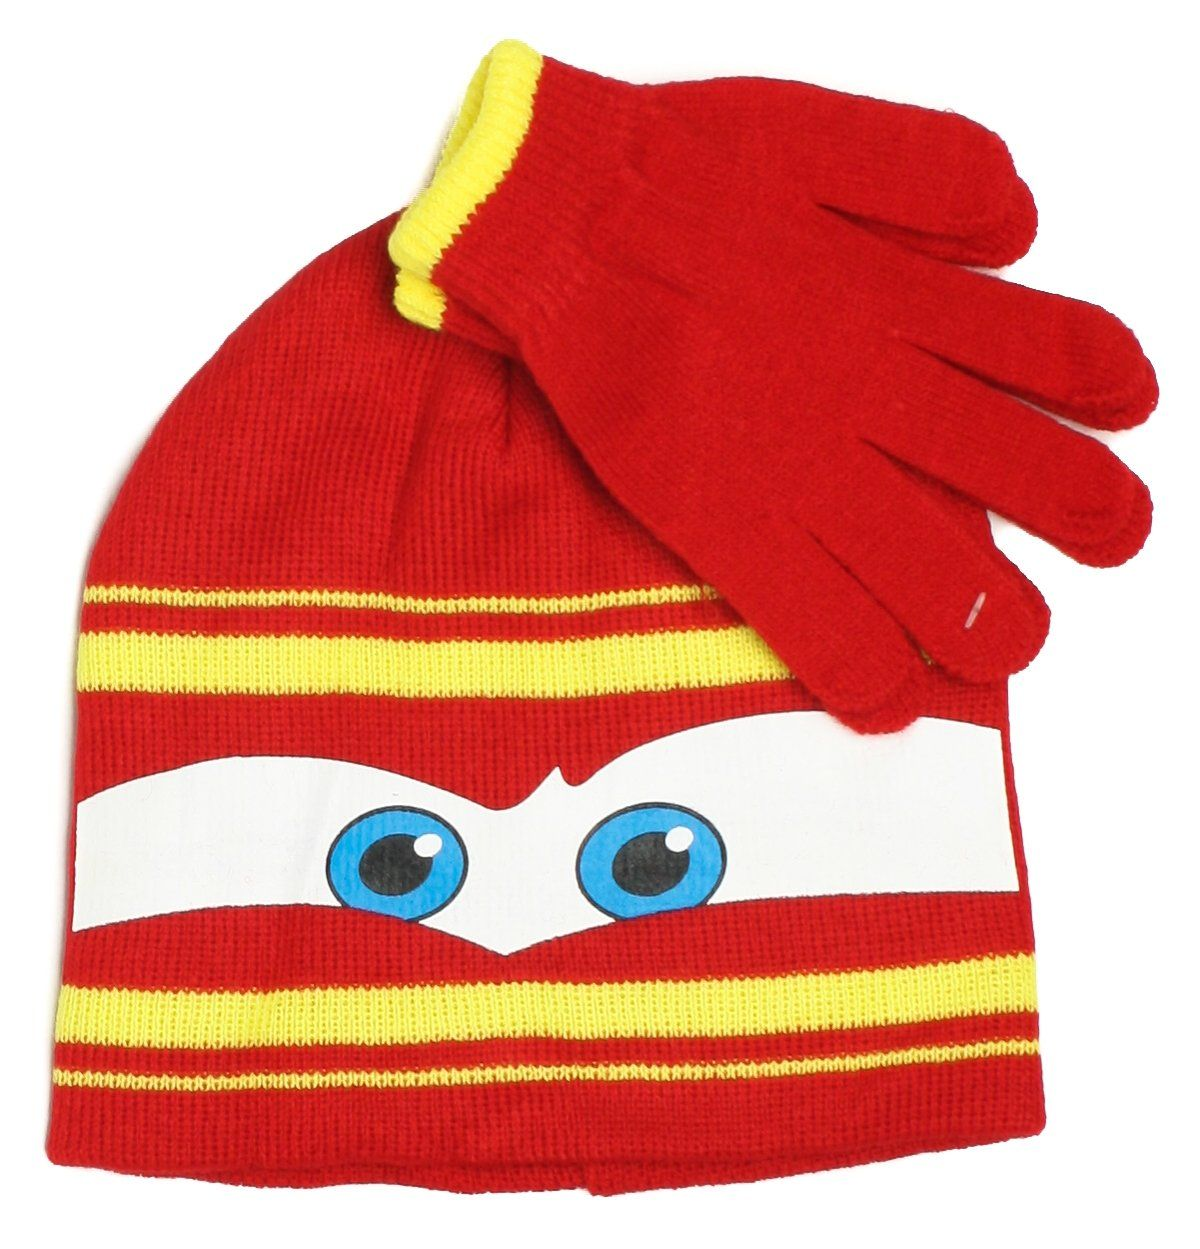 Disney Pixar Lightning McQueen Cars Winter Beanie Hat and Gloves Set ... 13a17eaa4779